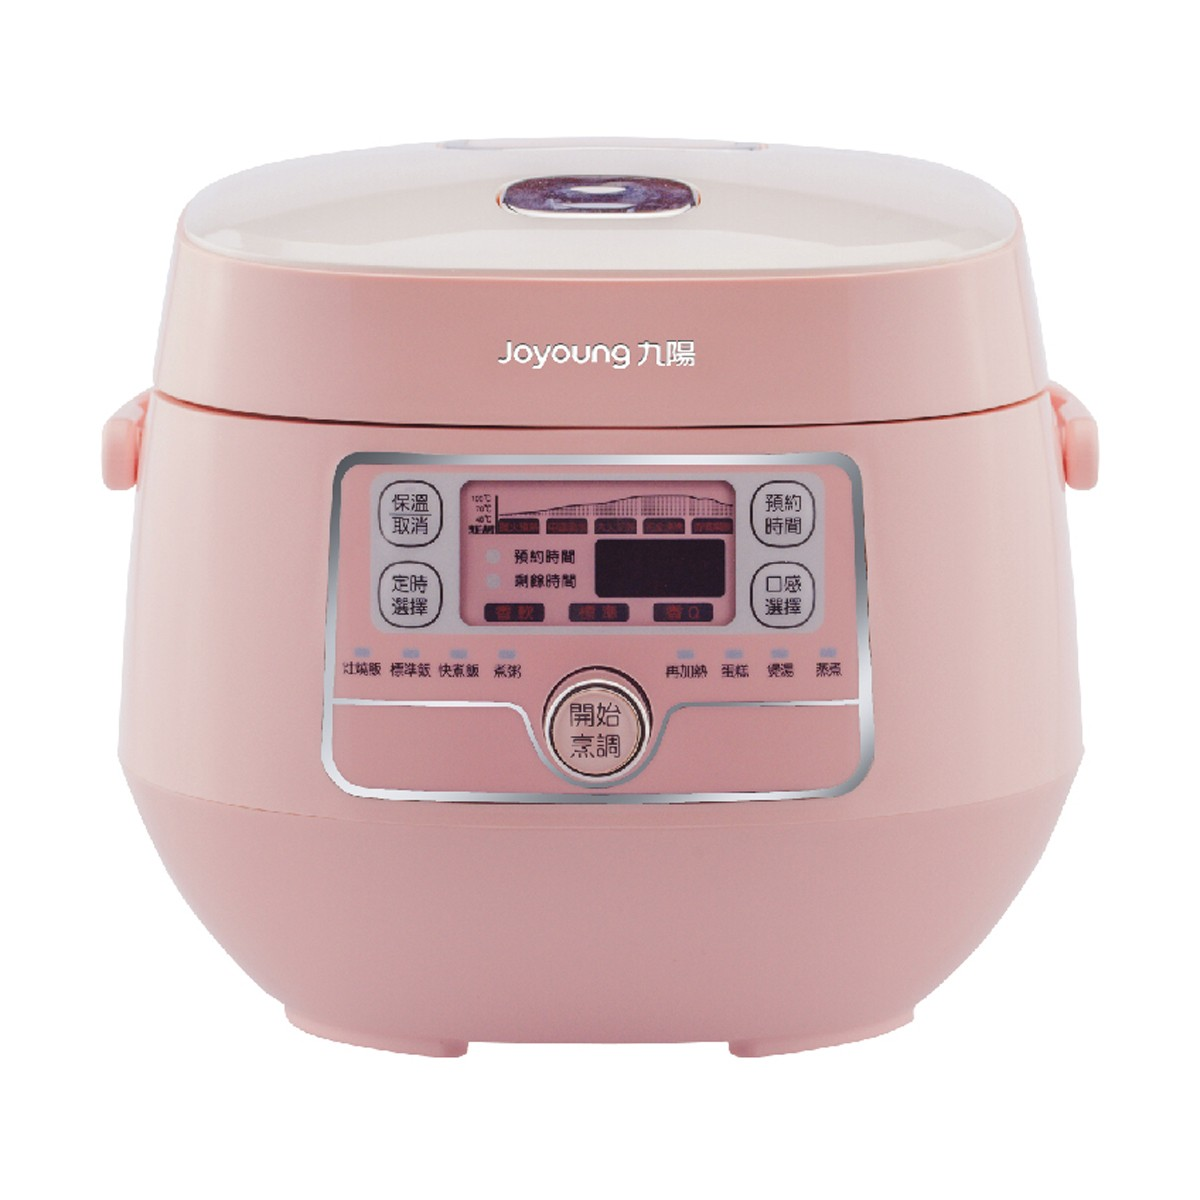 Yamibuy.com:Customer reviews:[NEW] JOYOUNG Mini Rice Cooker 2L JYF-20FS987M #Pink